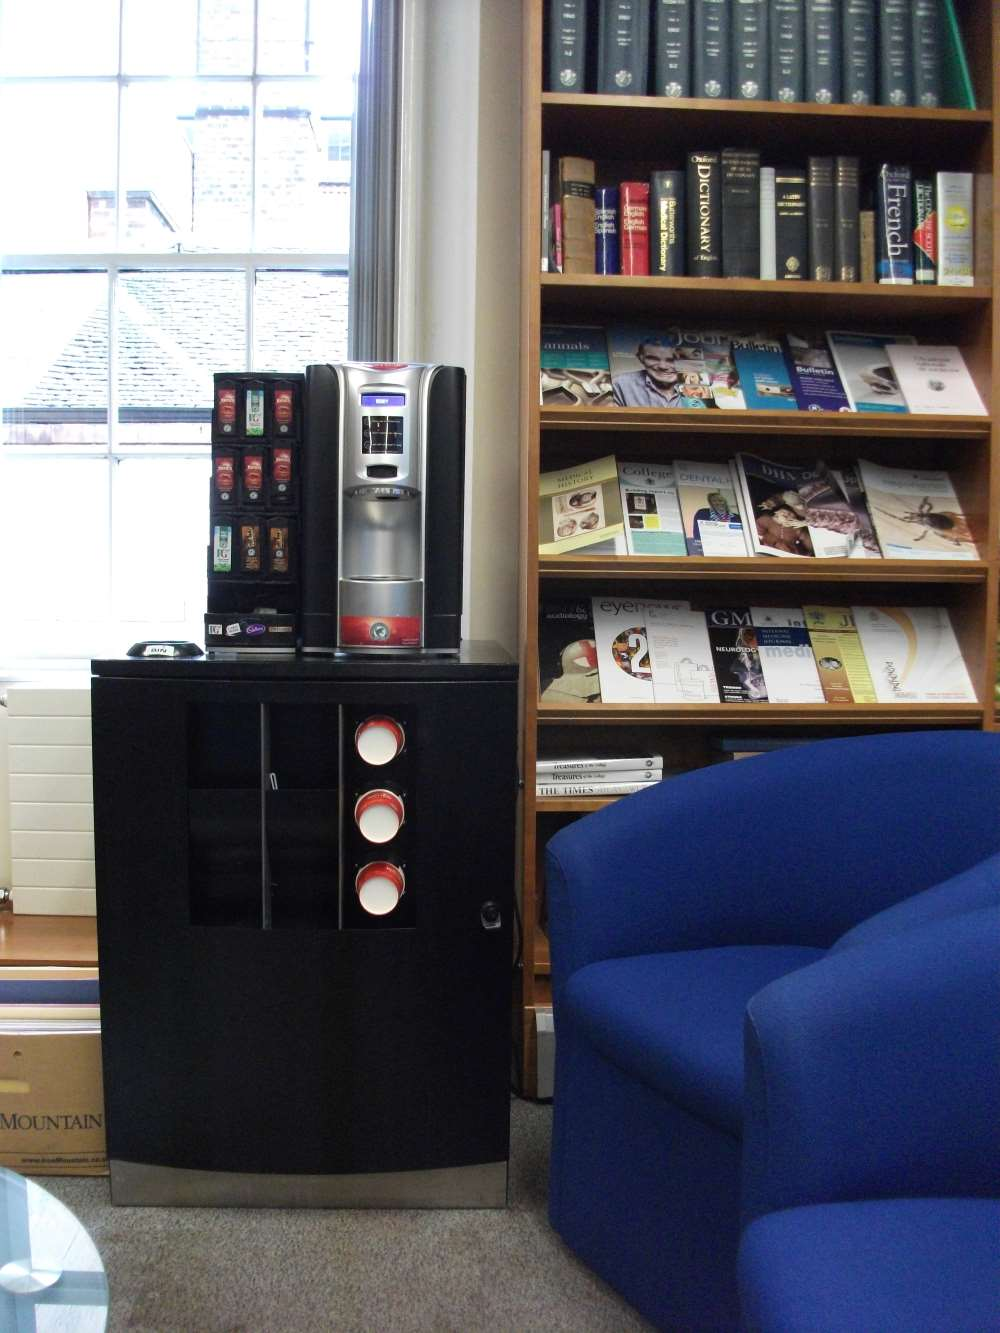 The Library tea and coffee machine - learning how to operate this is an essential skill.